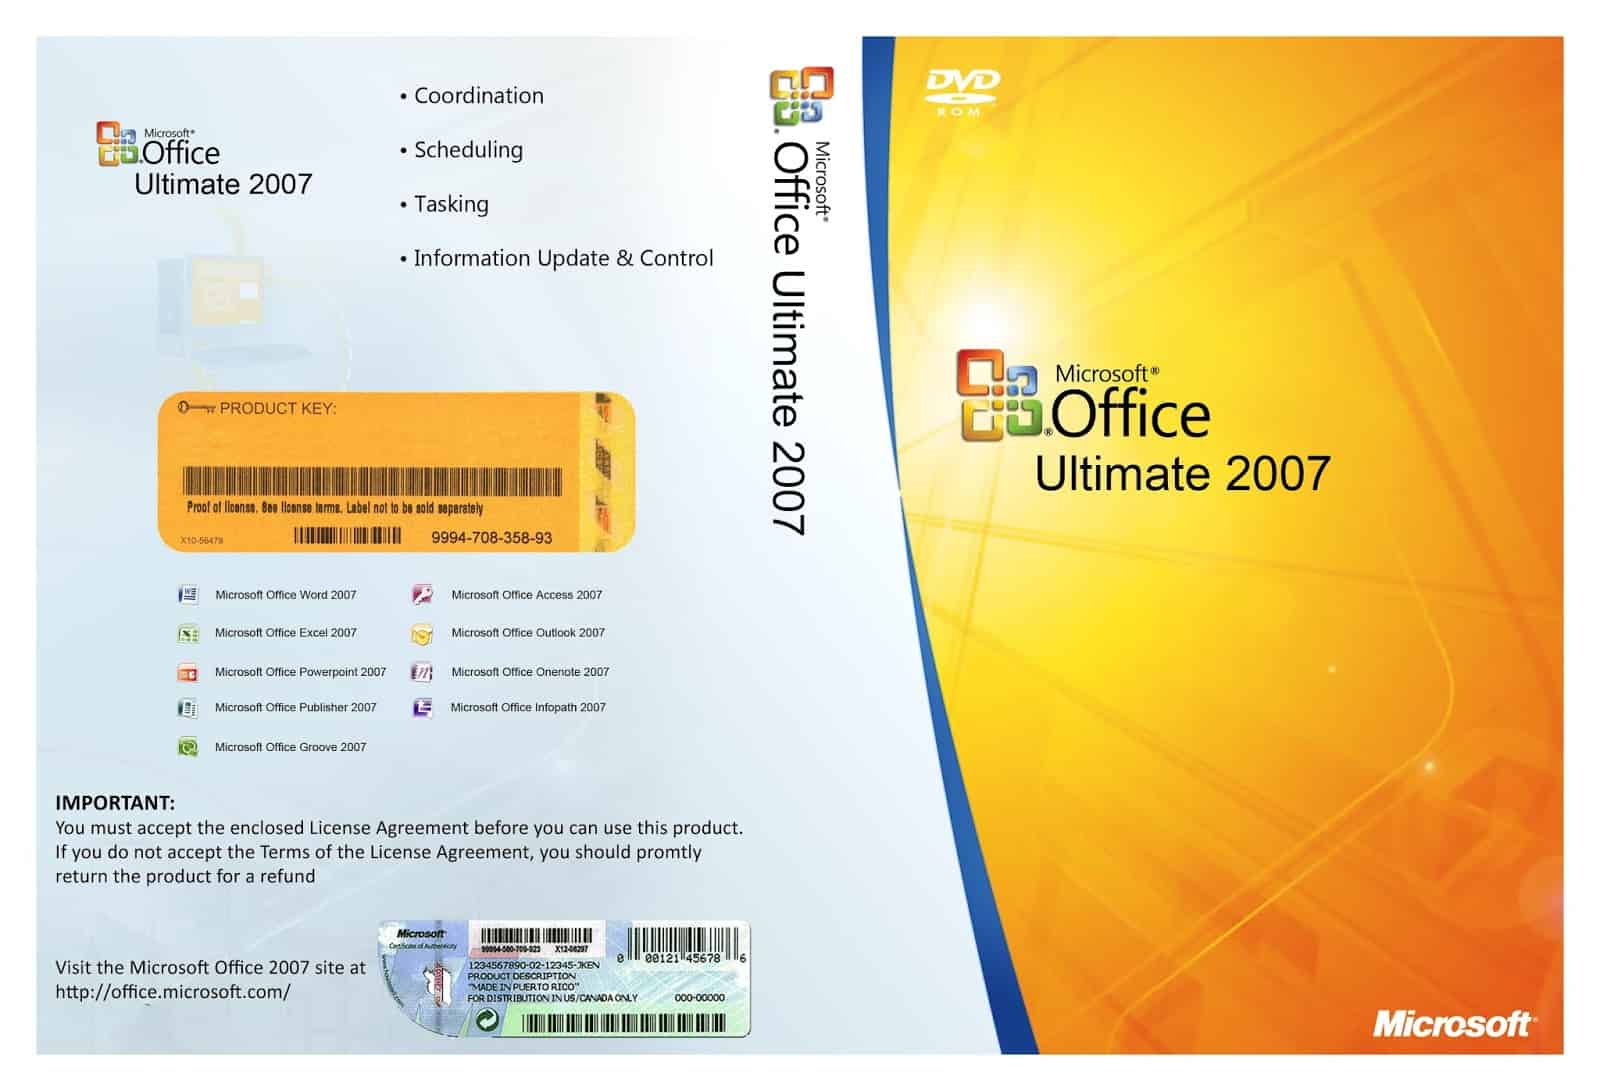 microsoft office package 2007 free download for windows 7